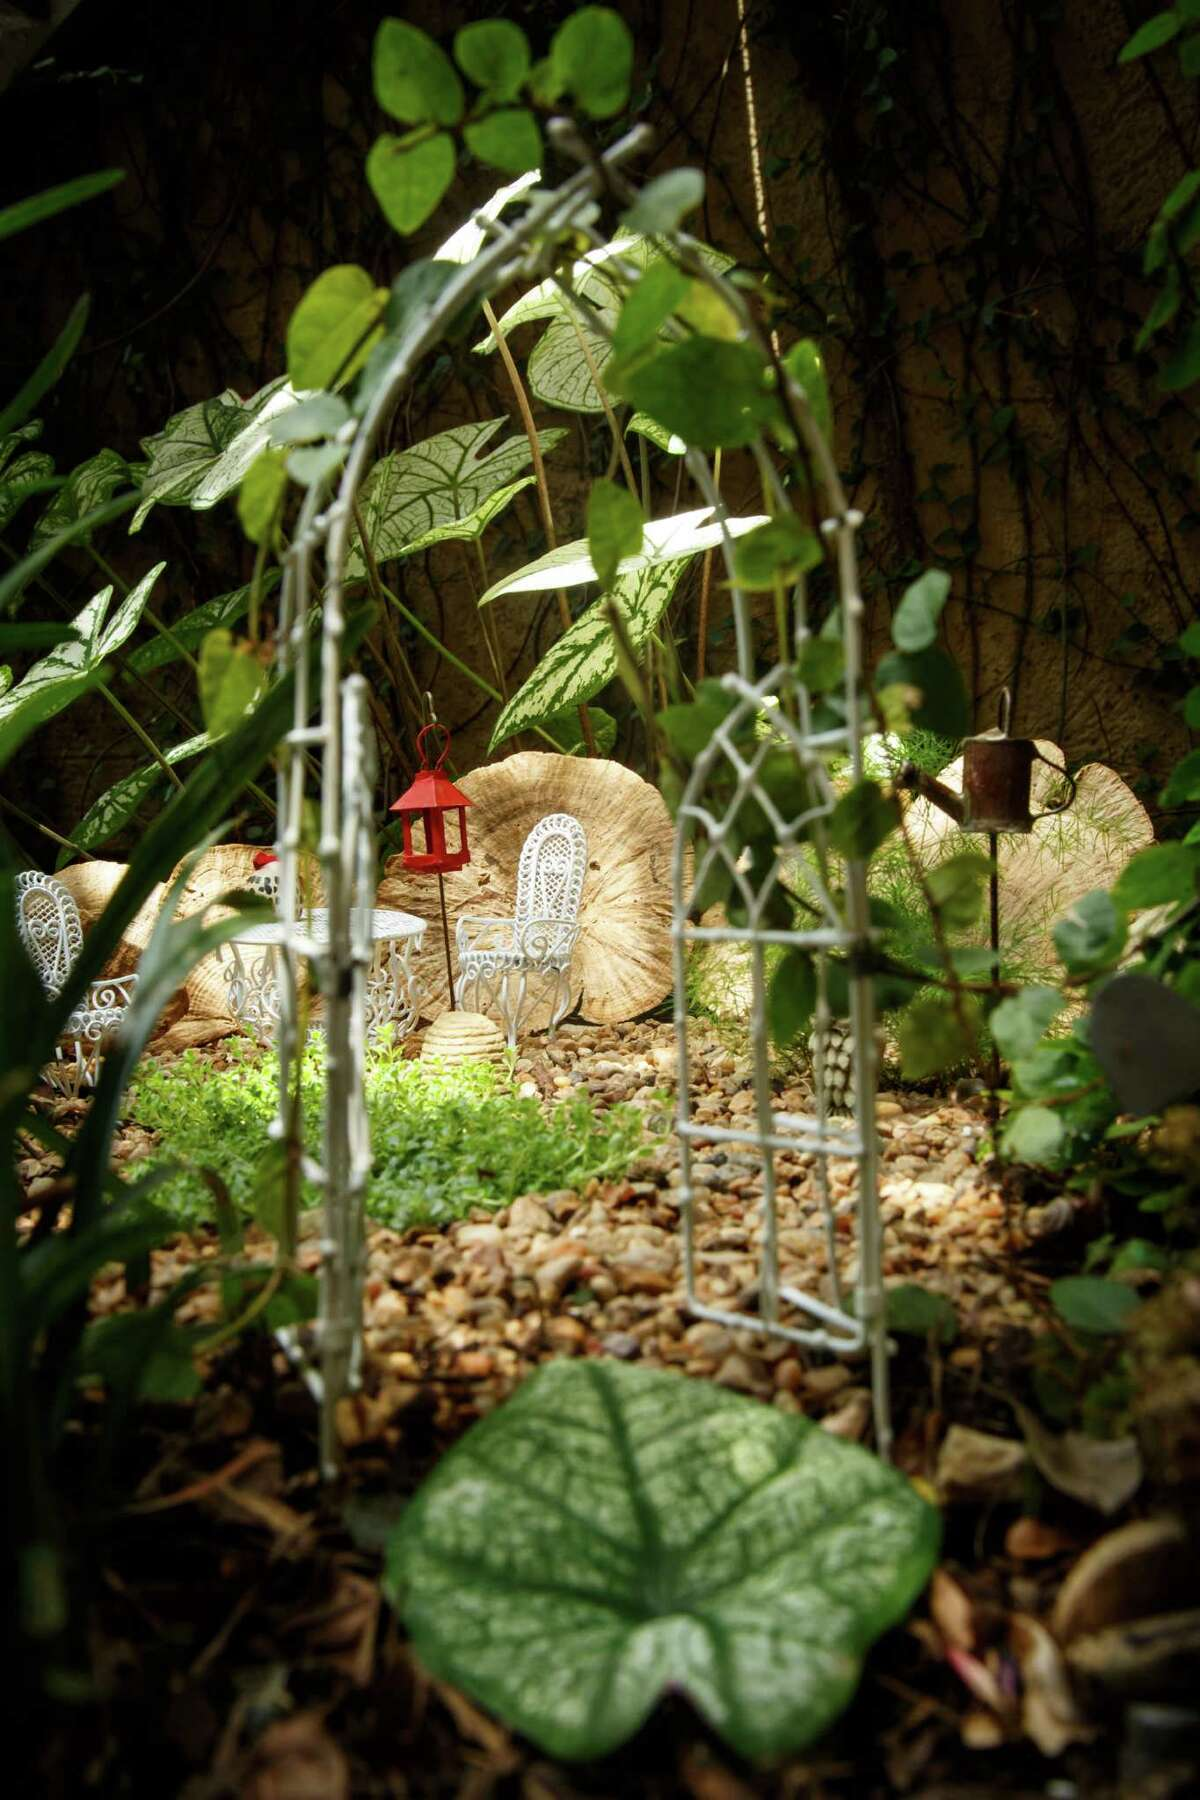 The tiny trellis draped in fig ivy is the entrance to the Caladium Forest, a fairy garden planted near the Wilde patio. Polka dot plant, miniature ming fern and 'Elfin' thyme are included in the small space. ( Michael Paulsen / Houston Chronicle )